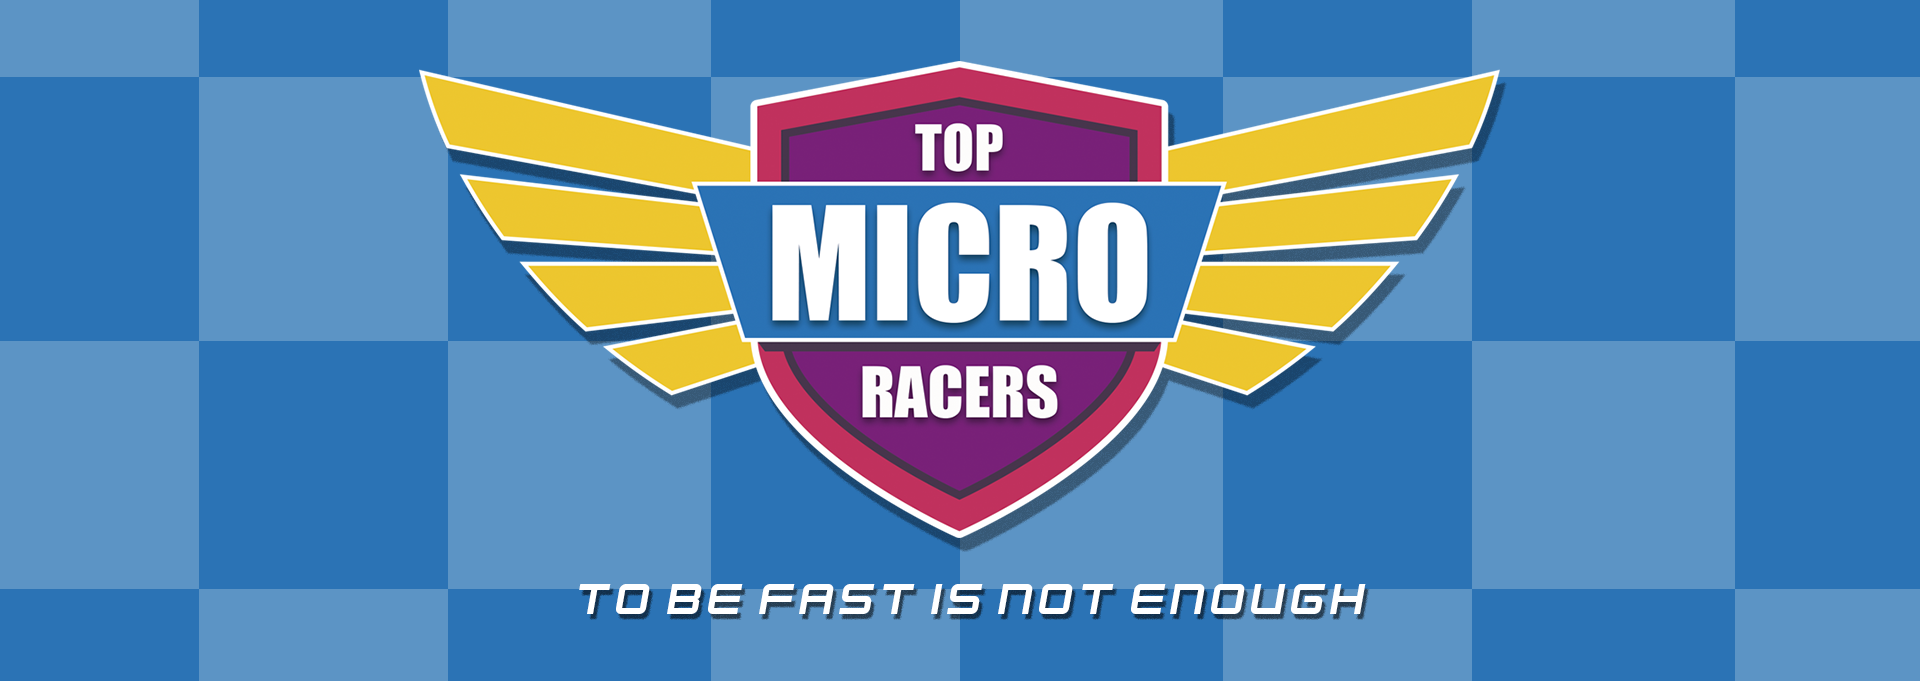 Top Micro Racers (Alpha)